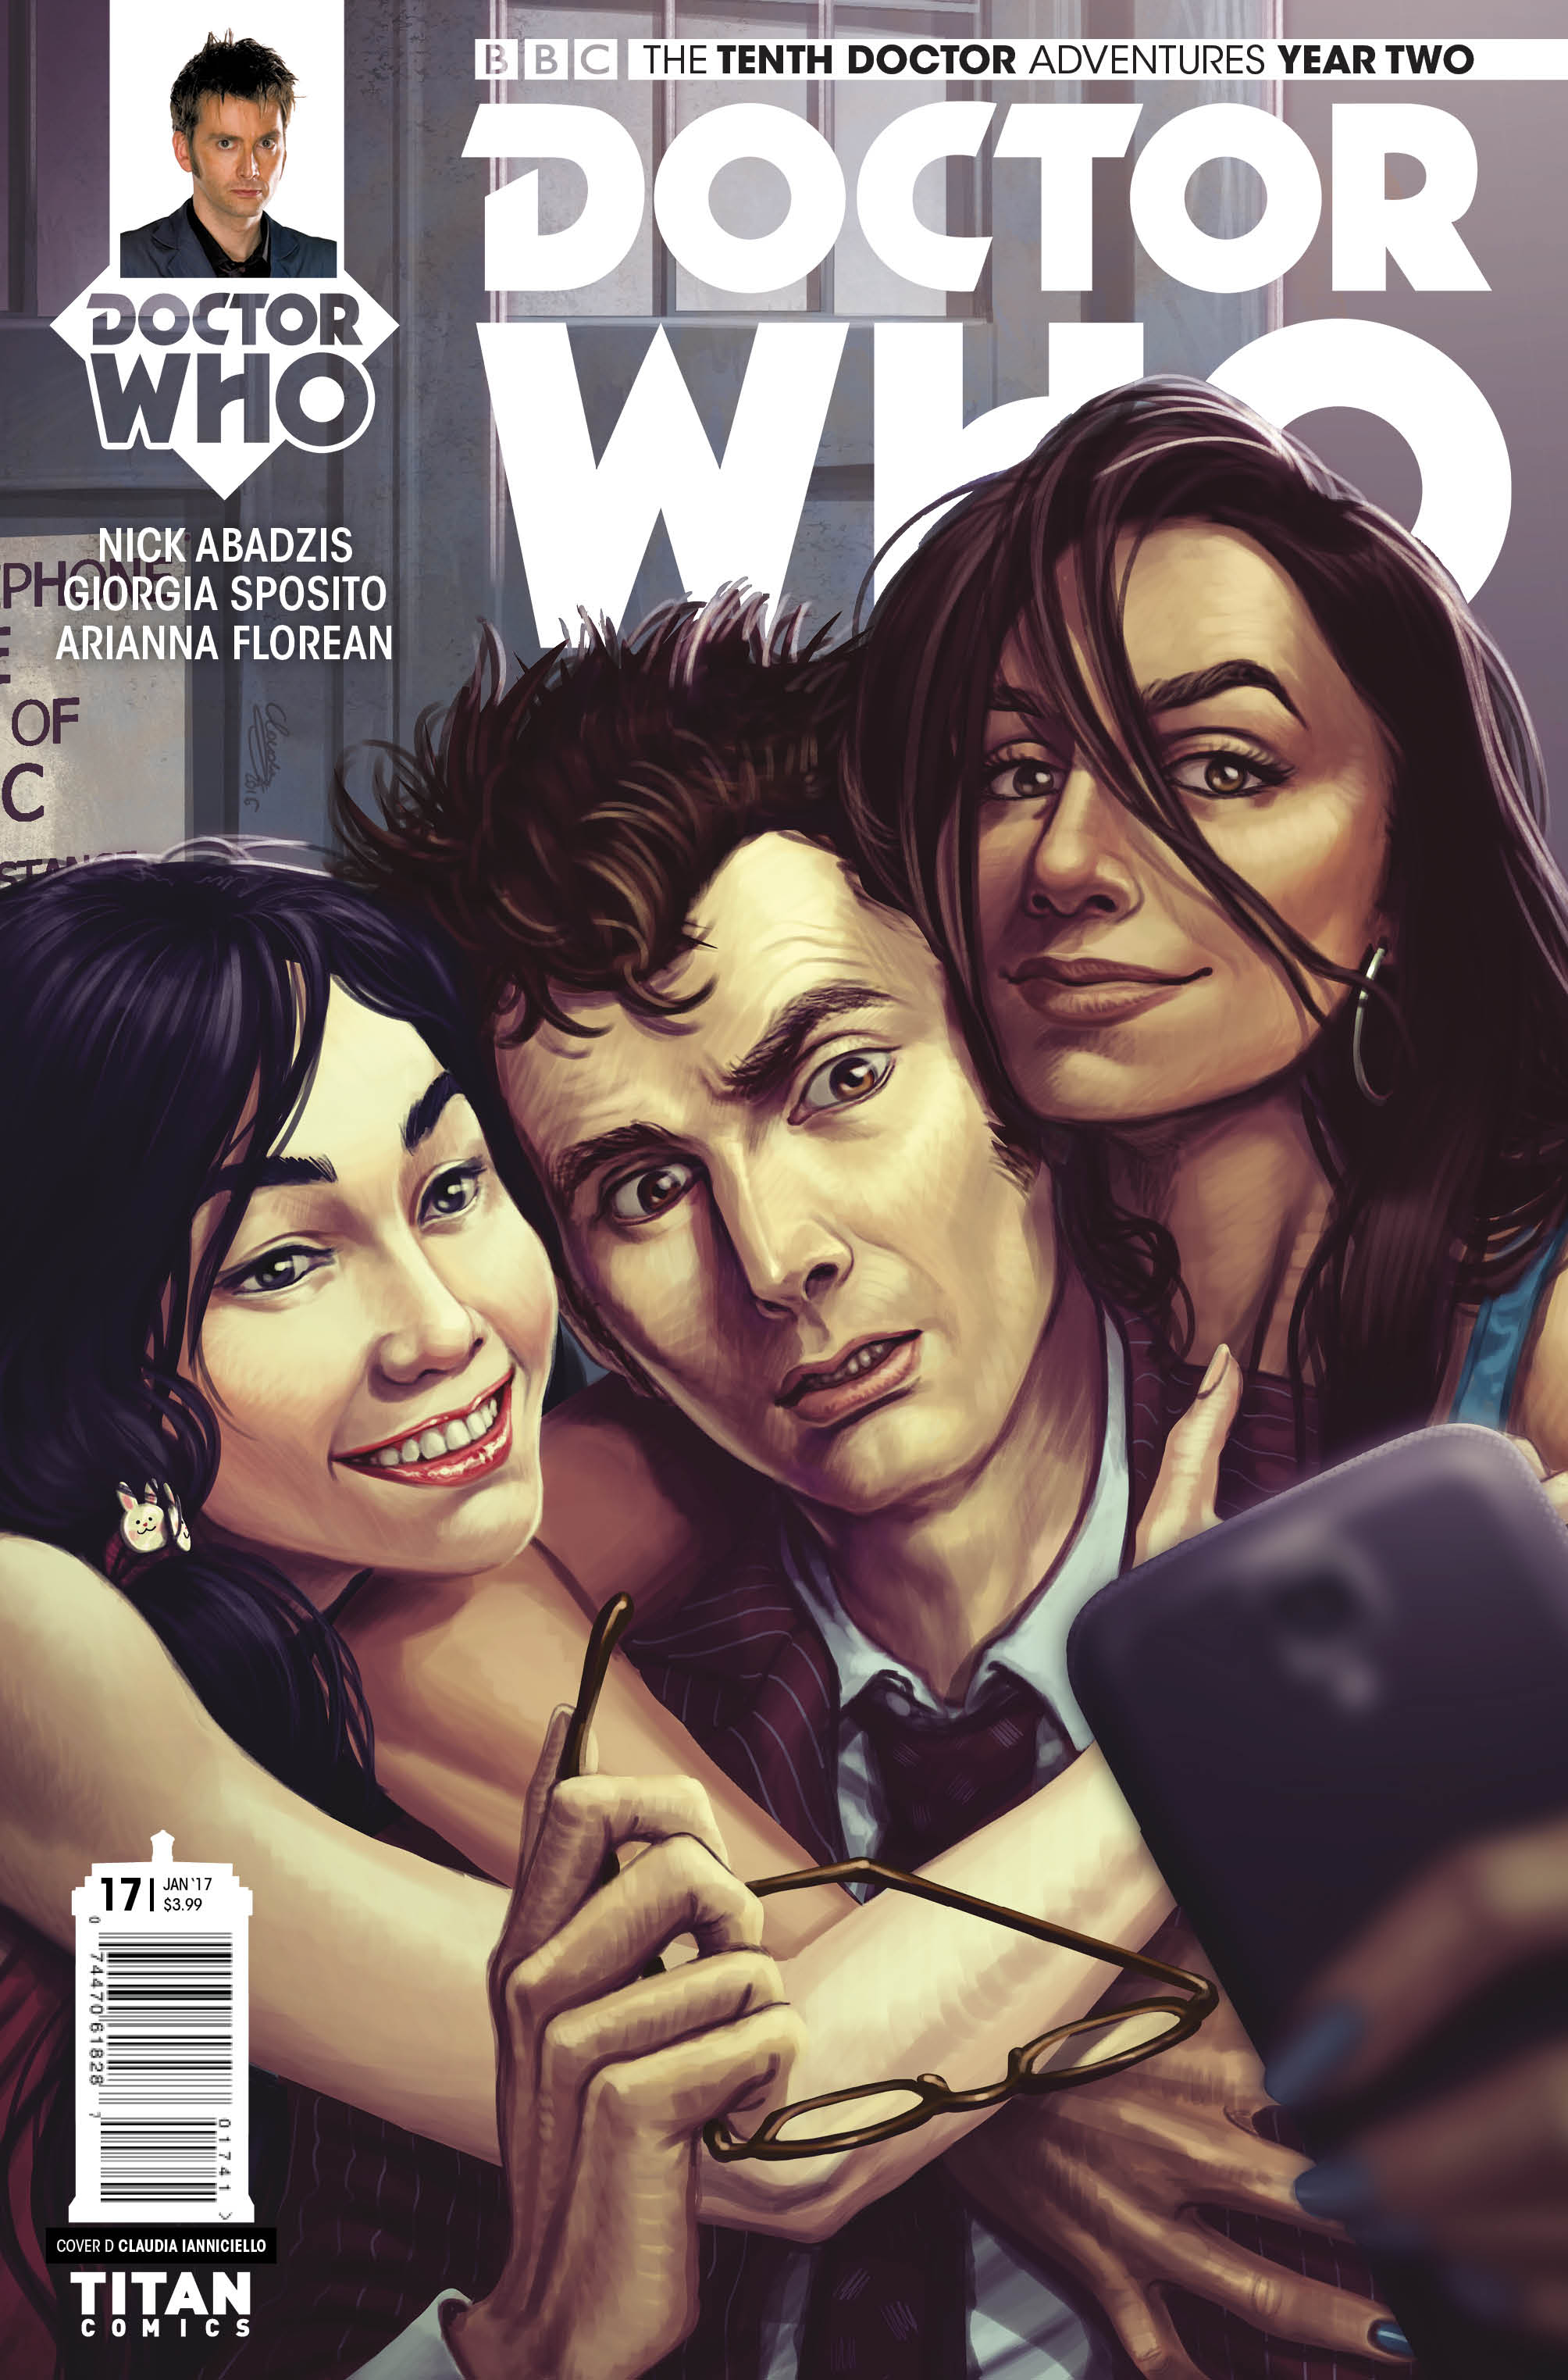 TENTH DOCTOR #2.17 Cover_D_Claudia_Ianniciello (Credit: Titan)